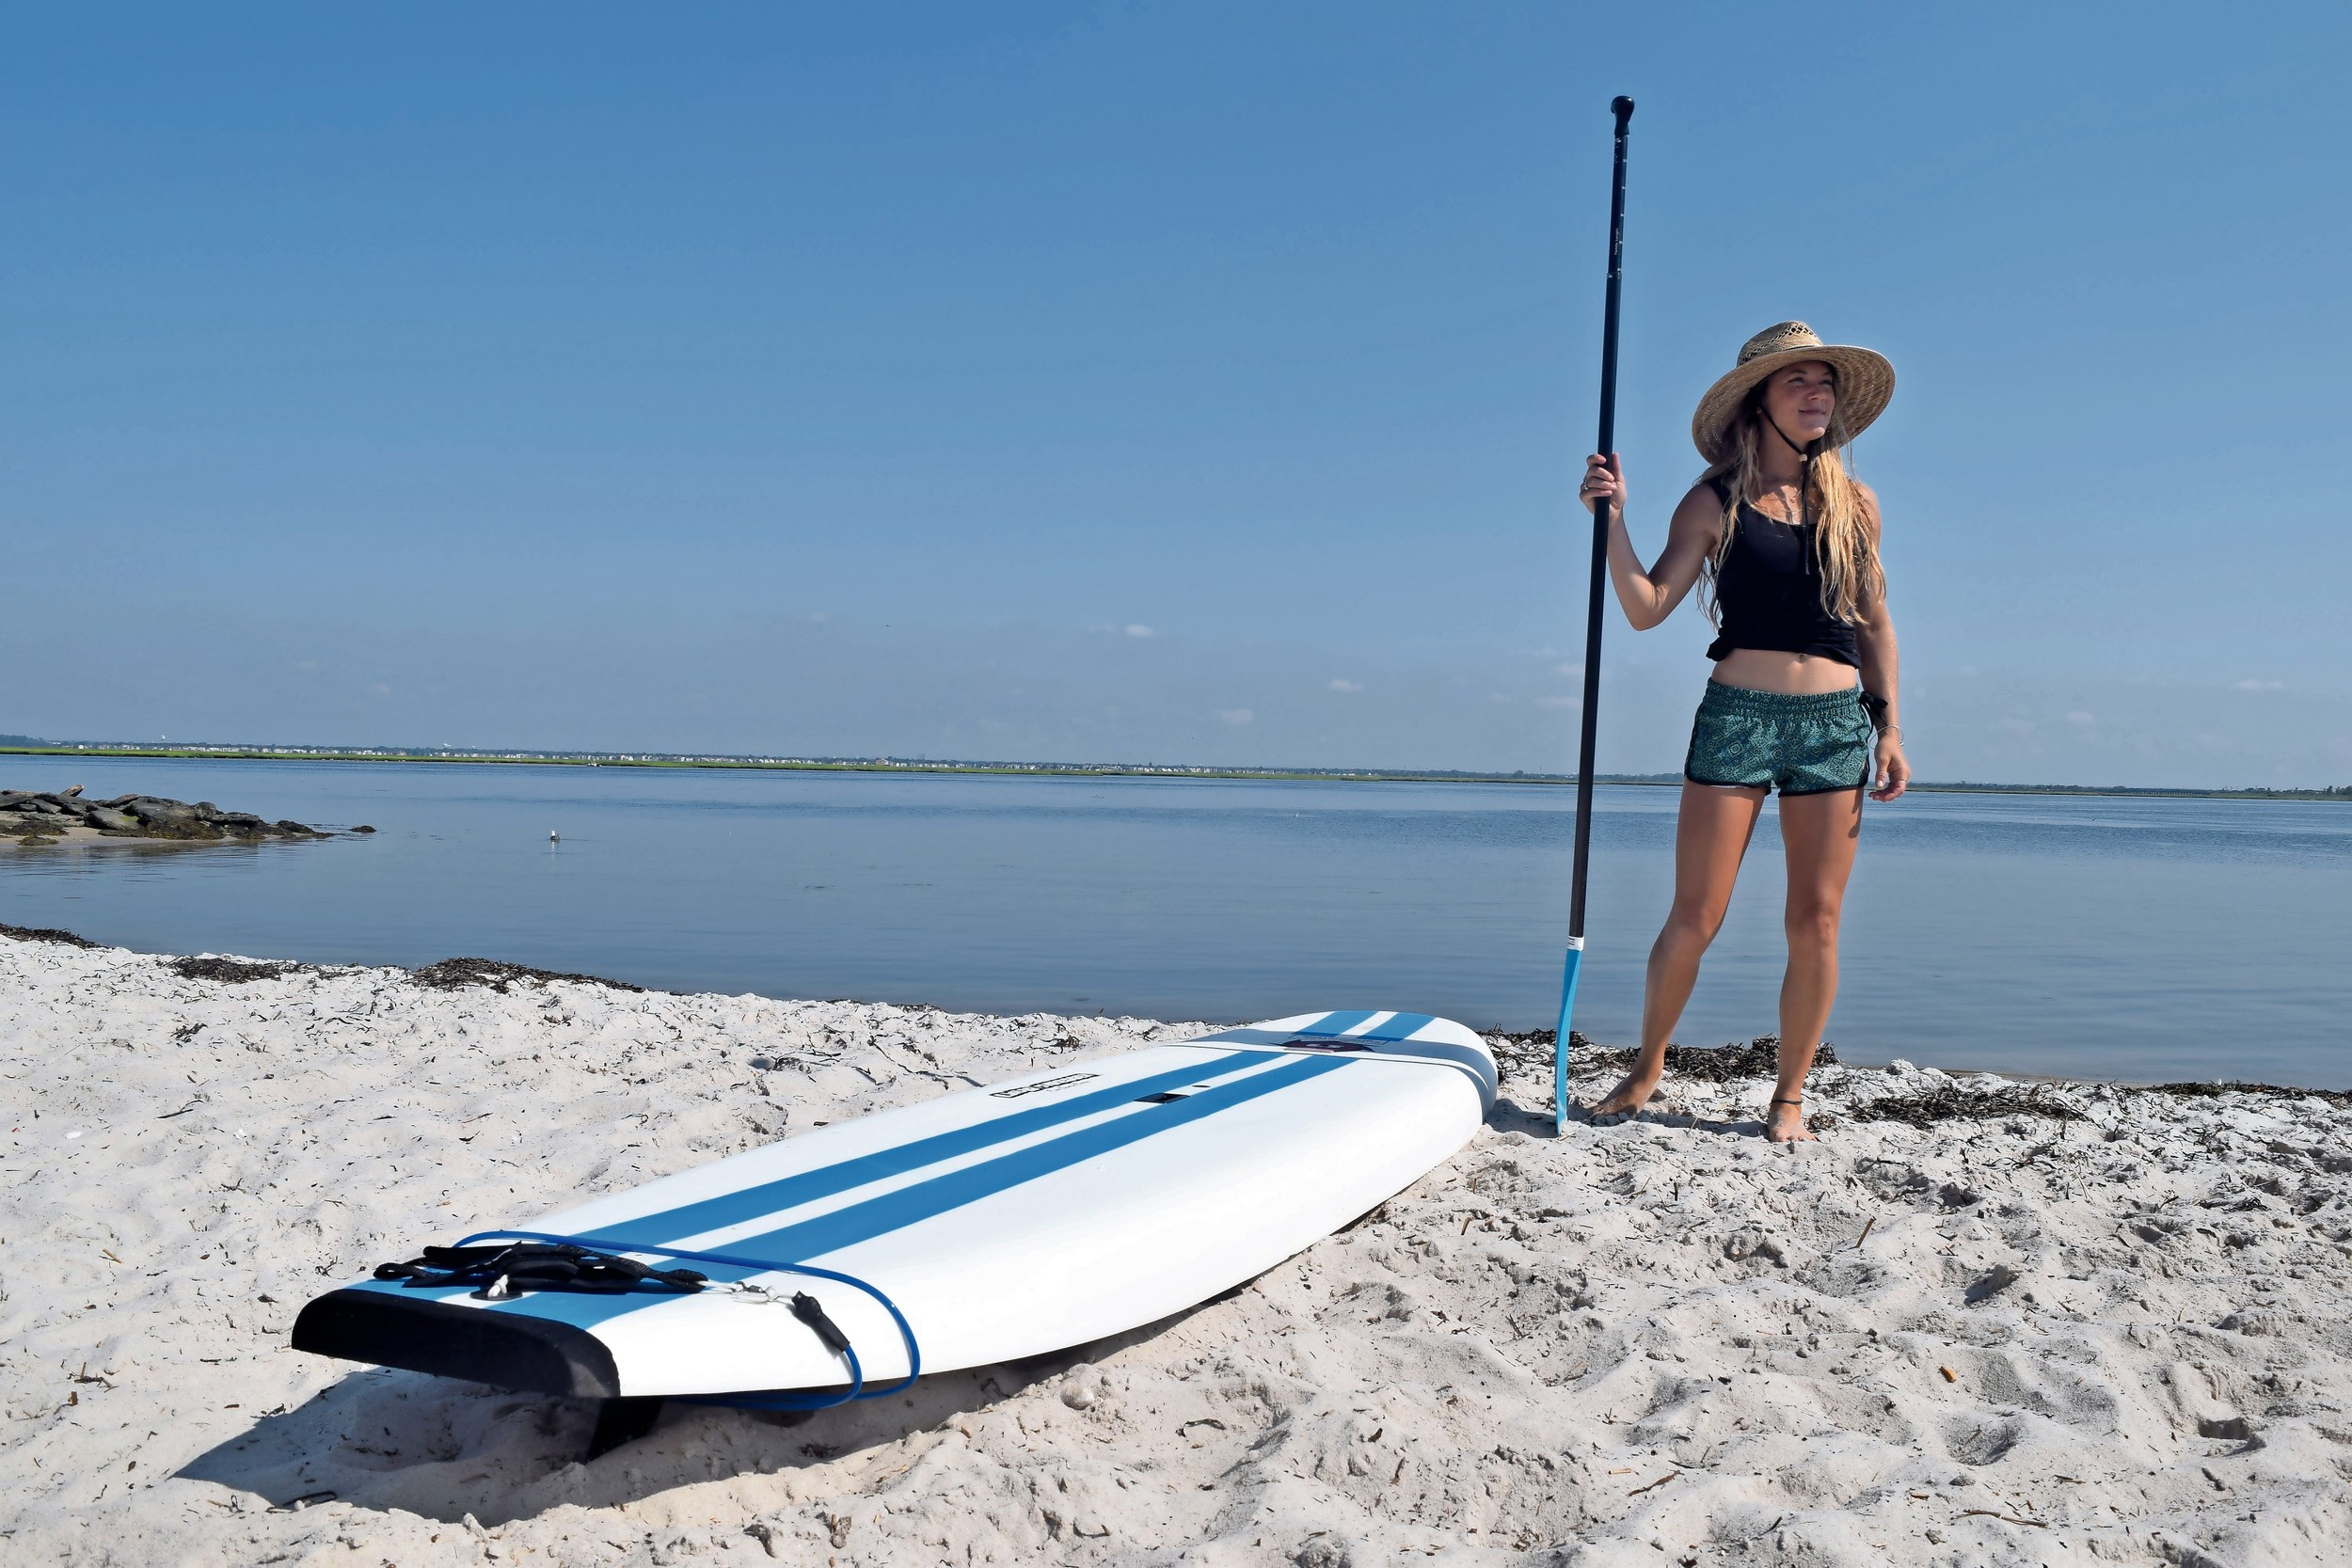 Hanono, 30, has been a certified paddleboard instructor for five years.